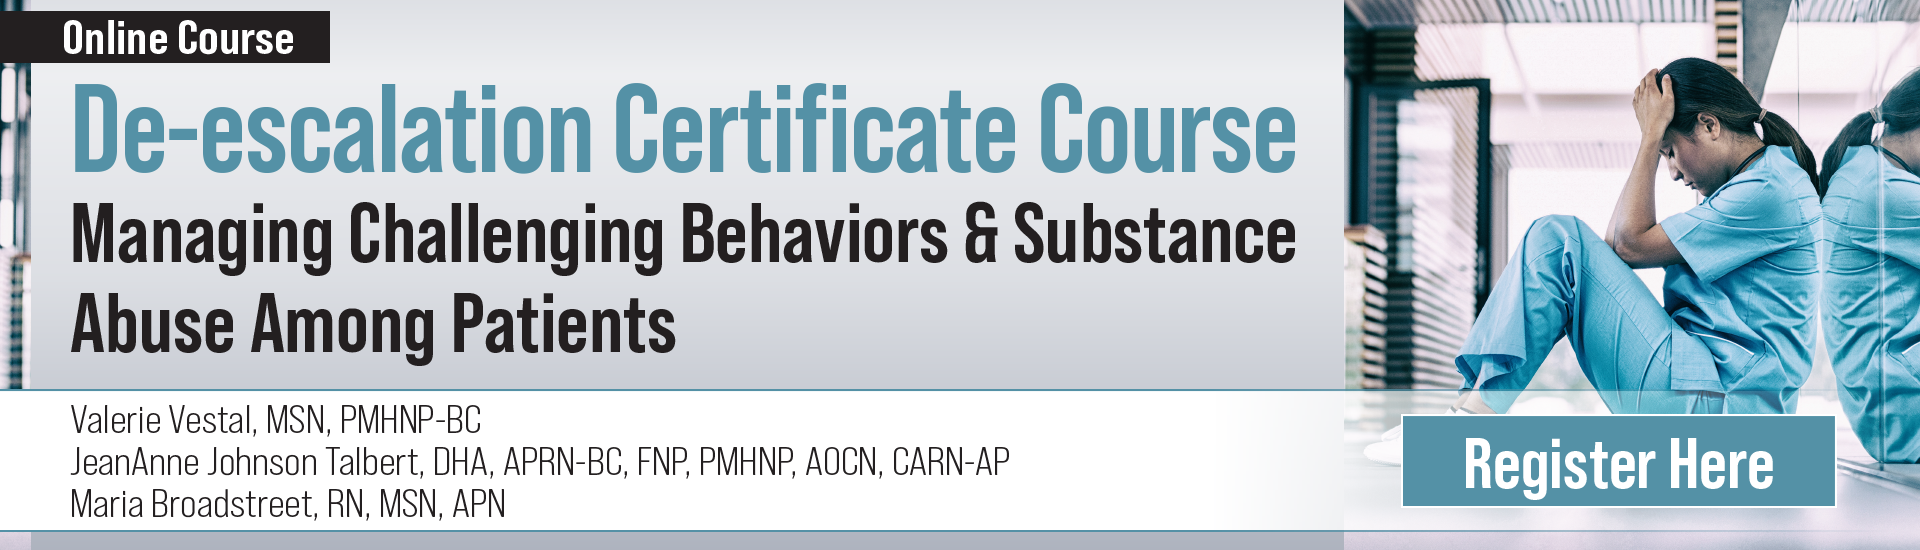 De-escalation Certificate Course: Managing Challenging Behaviors & Substance Abuse Among Patients